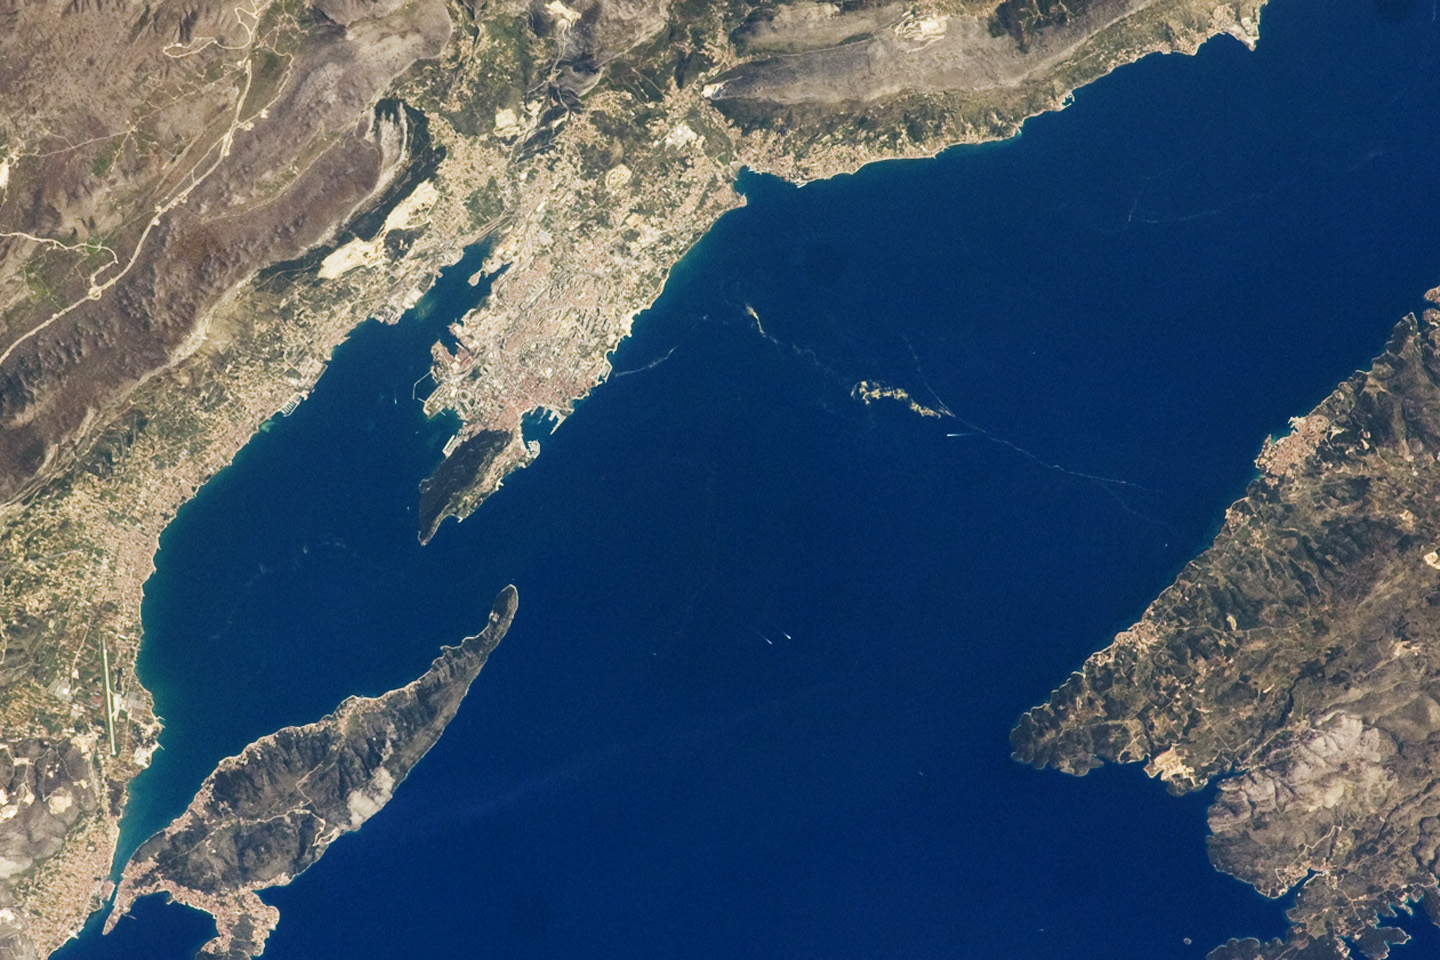 Today's Image of the Day comes thanks to the NASA Earth Observatory and features a look at the Dalmatian Coastline in the Adriatic Sea.